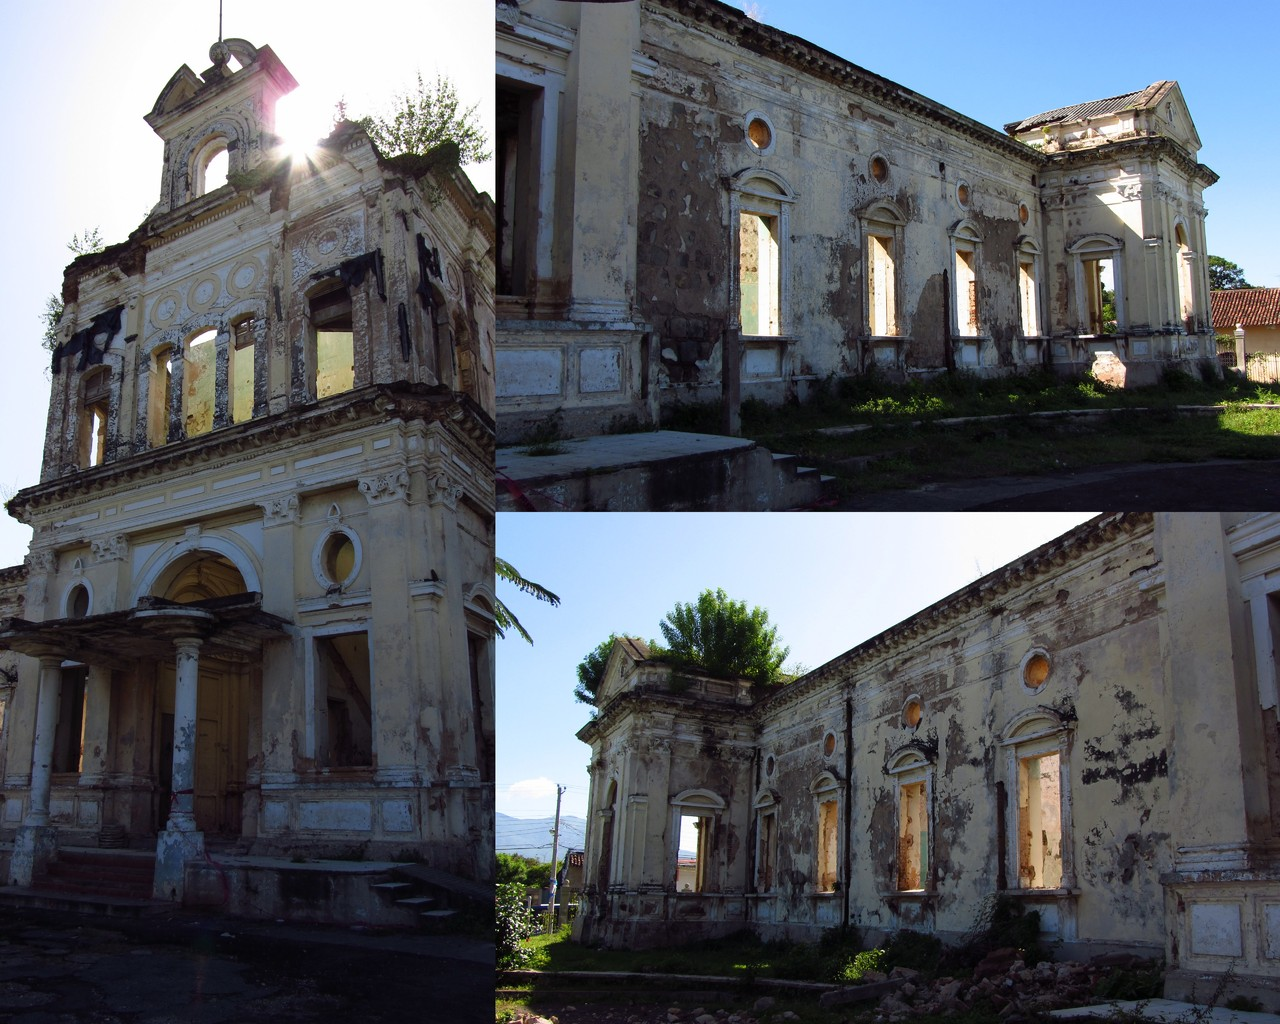 The beautiful ruins of the old hospital